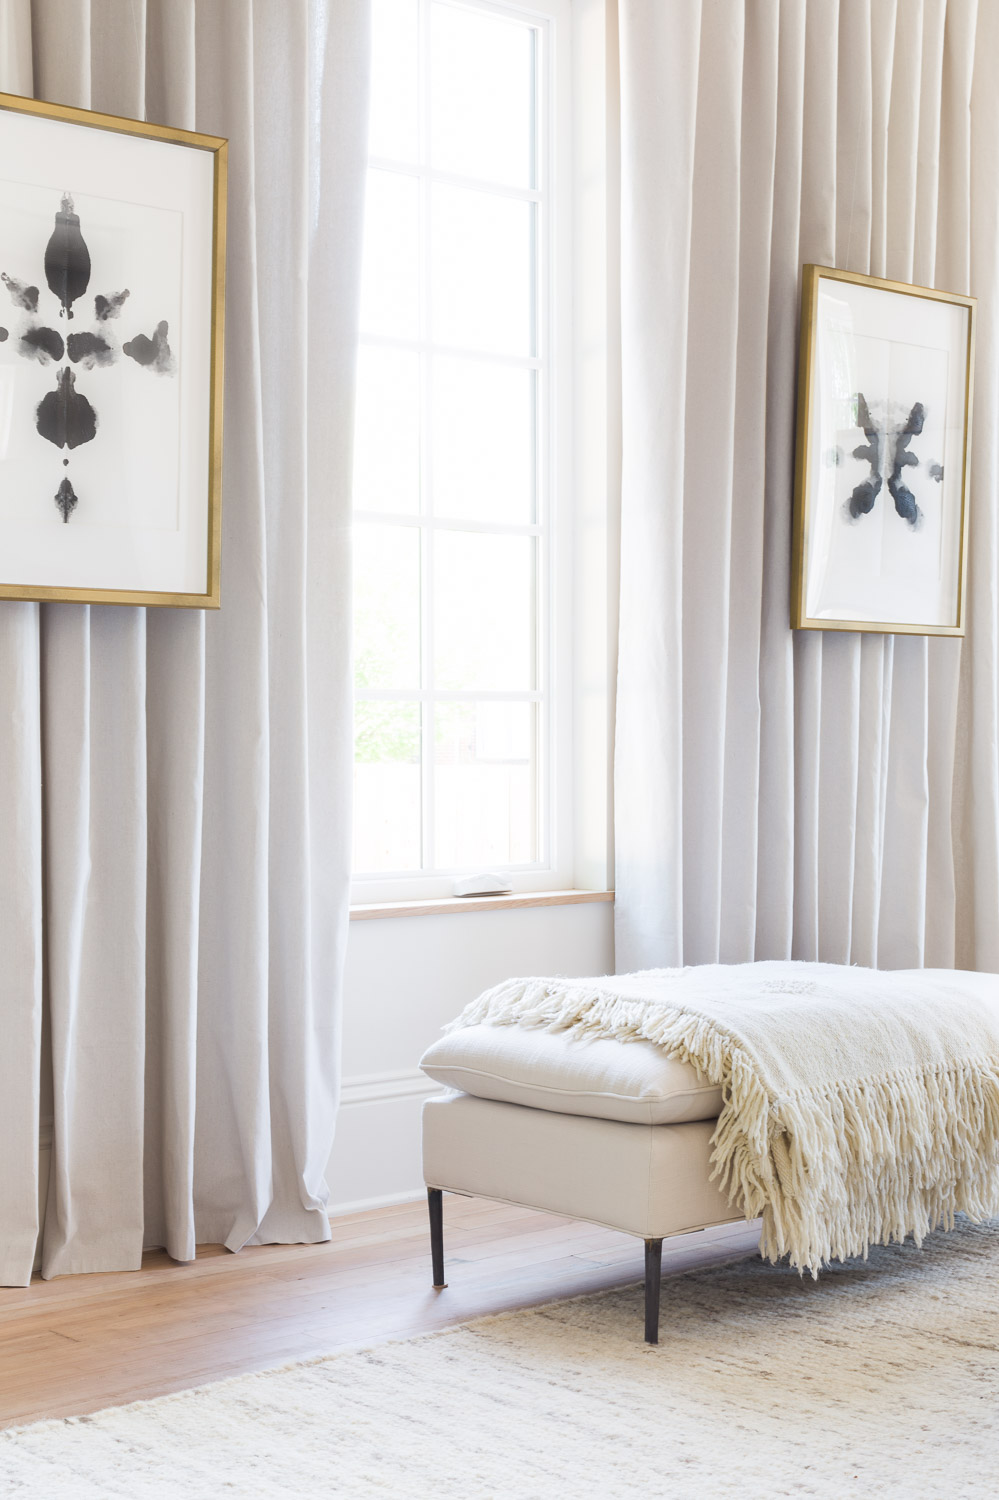 Draped Walls by Kaemingk Design.  Photo: Alyssa Rosenheck